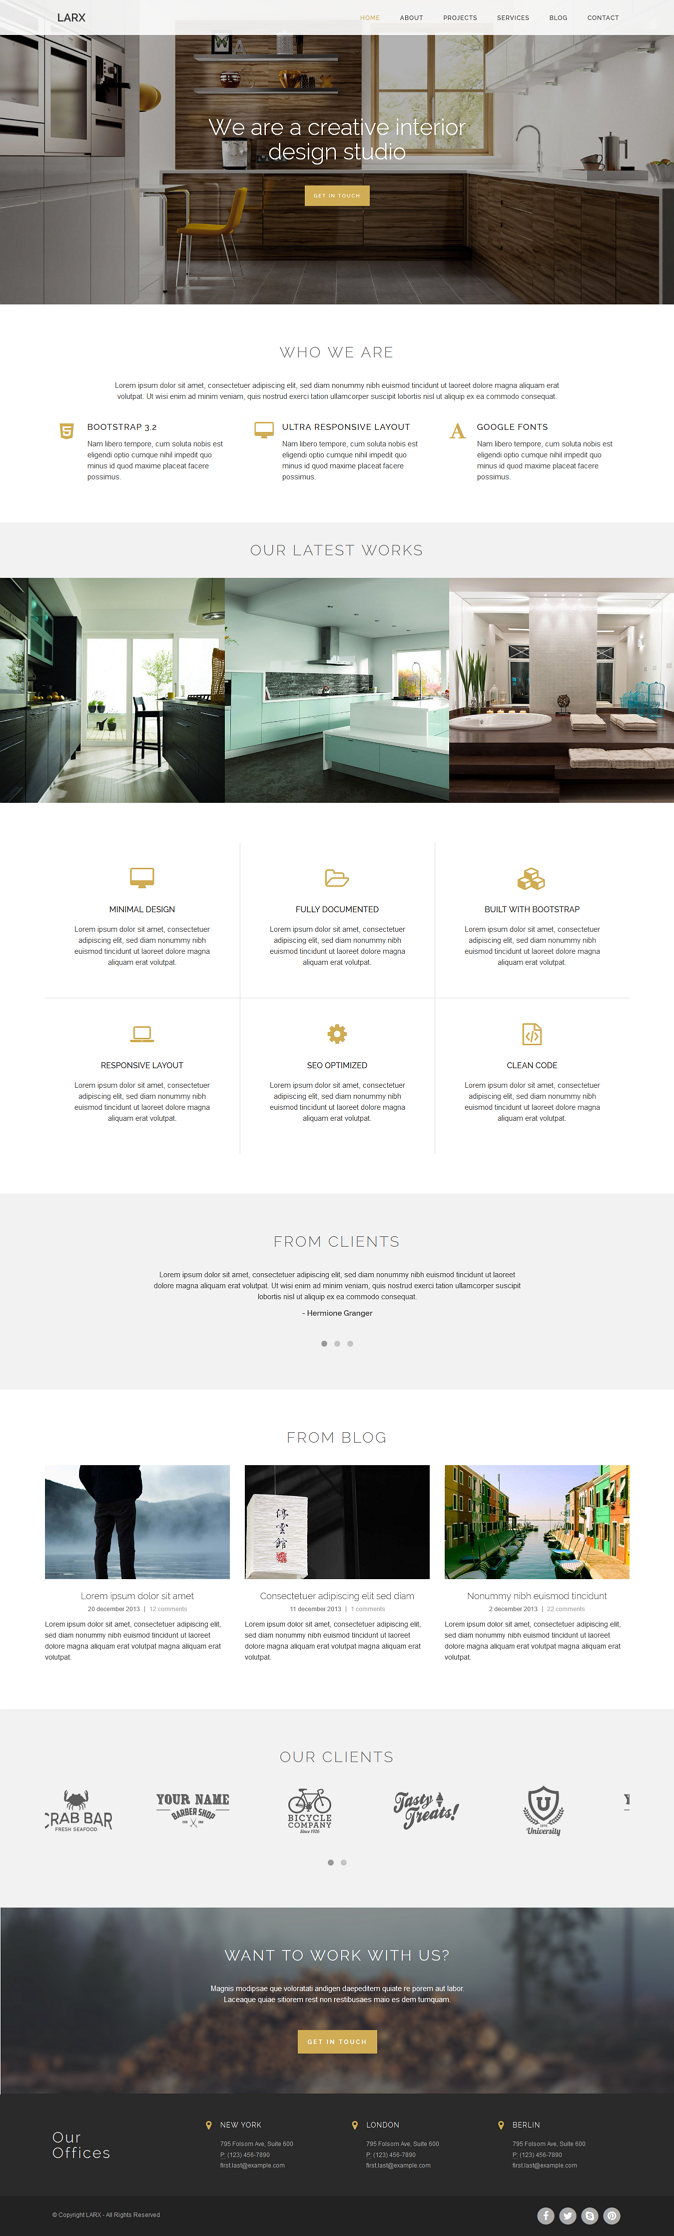 Larx is a amazing Bootstrap template for Creative, Architecture, Organization, Community, Compan ...